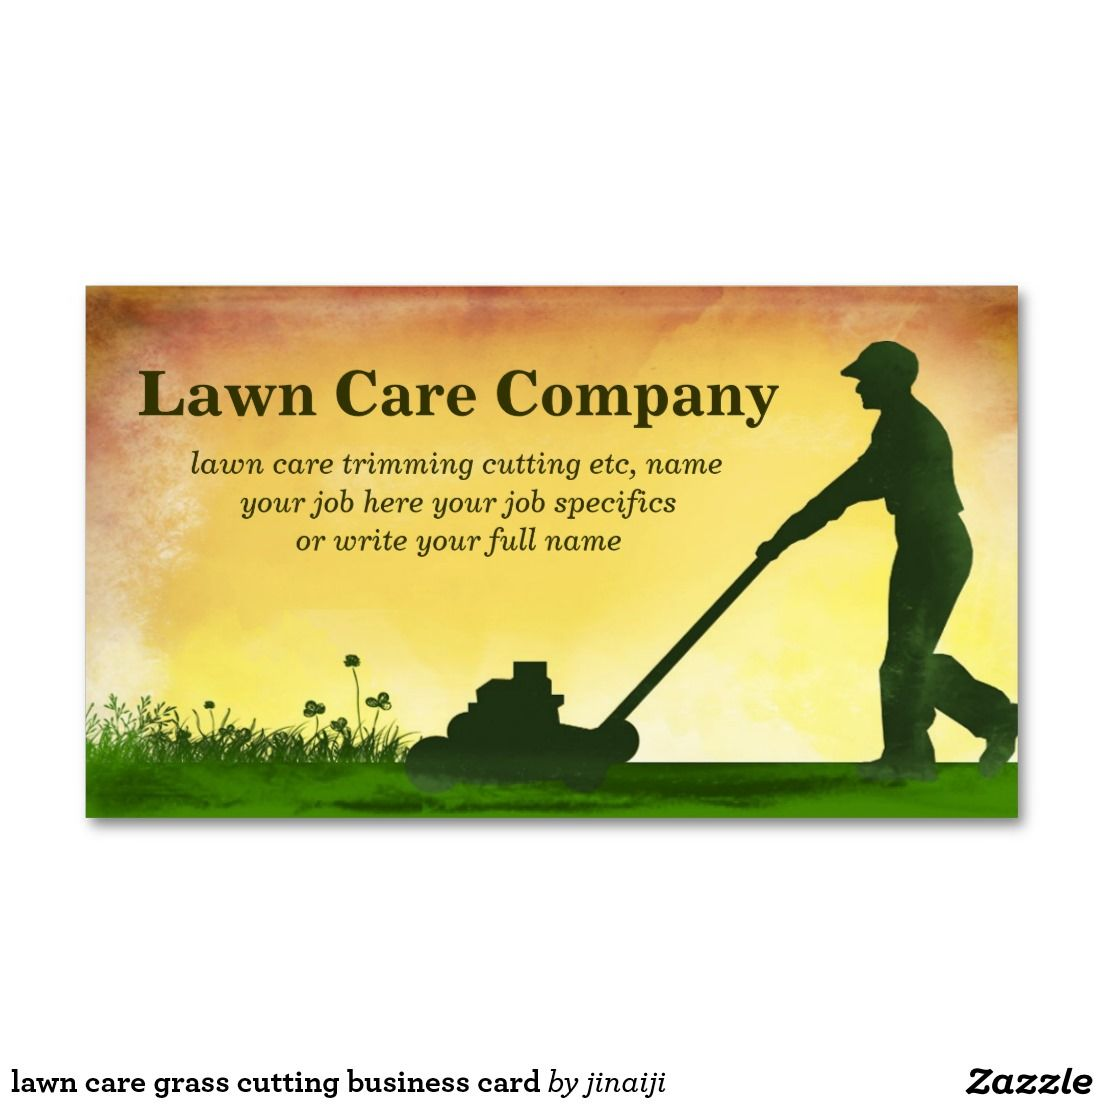 lawn care grass cutting business card standard business cards ...